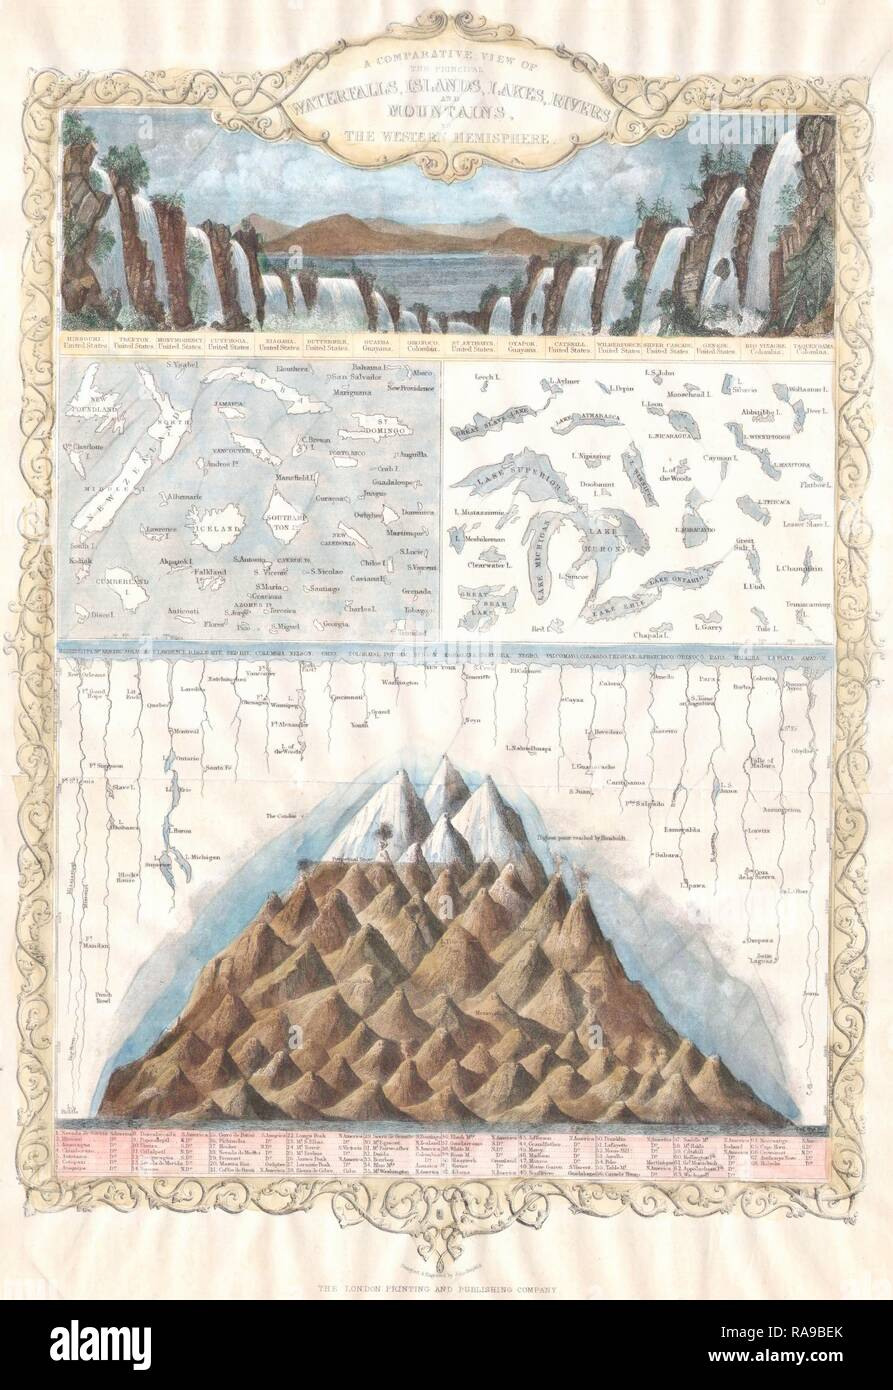 1850, Tallis Maps of the Mountains, Rivers, Waterfalls and Islands of the Western Hemisphere, America. Reimagined - Stock Image